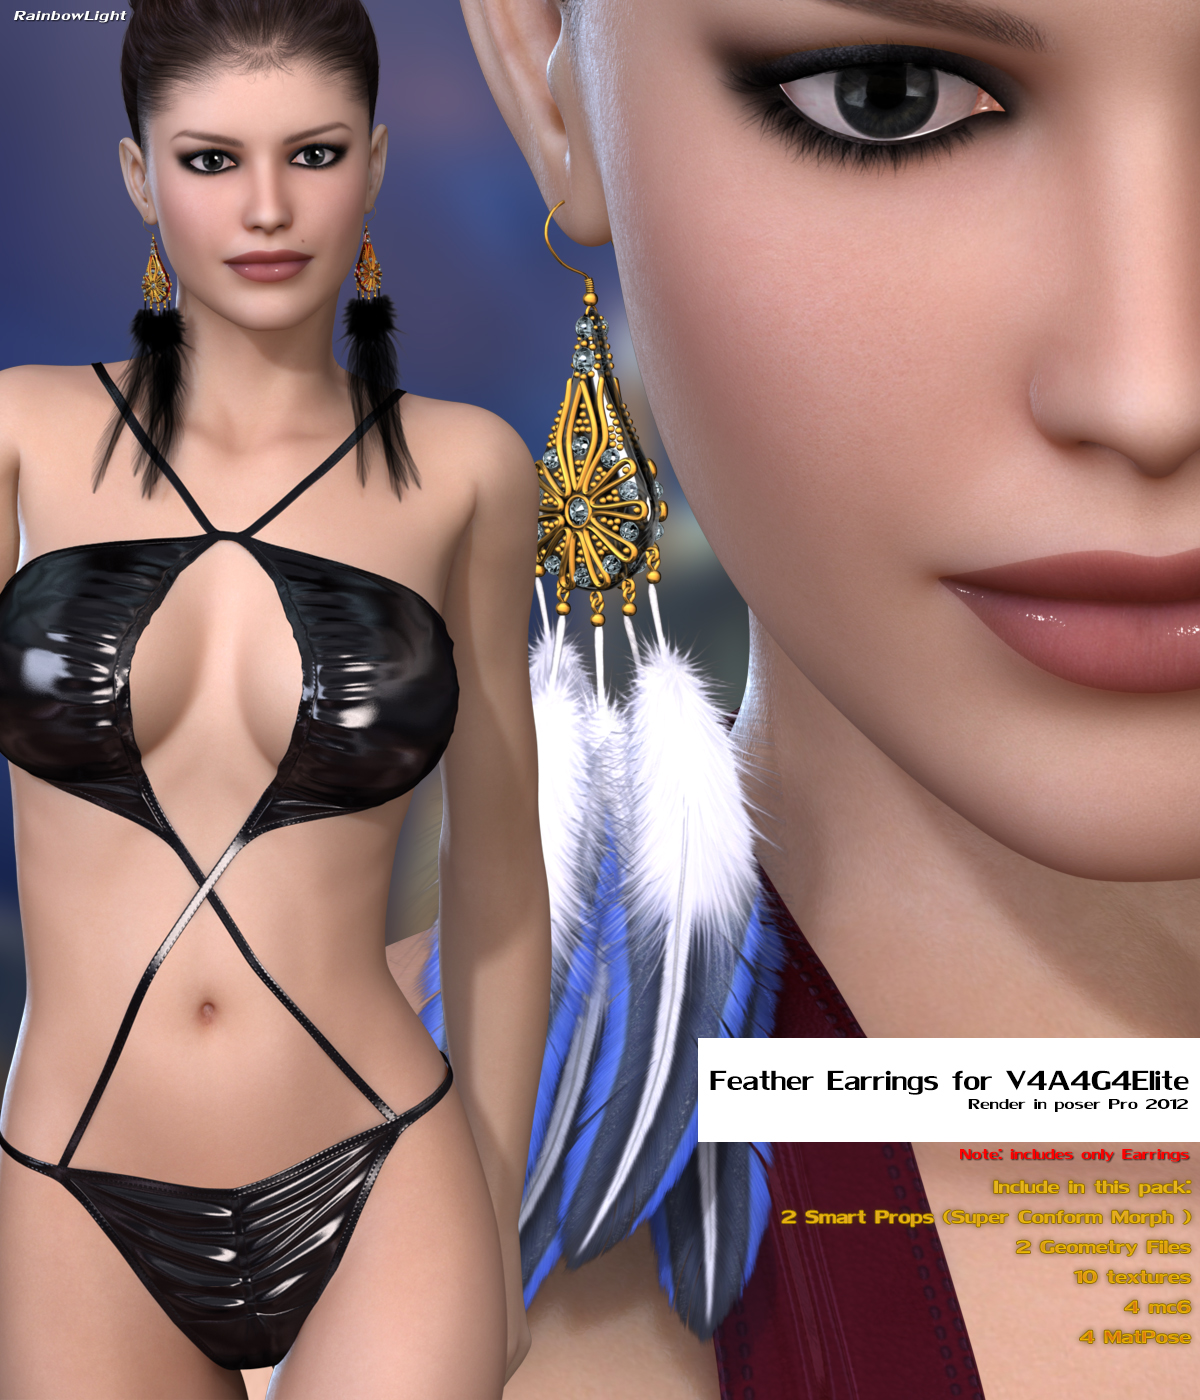 Feather Earrings for V4A4G4ElitebyRainbowLight()